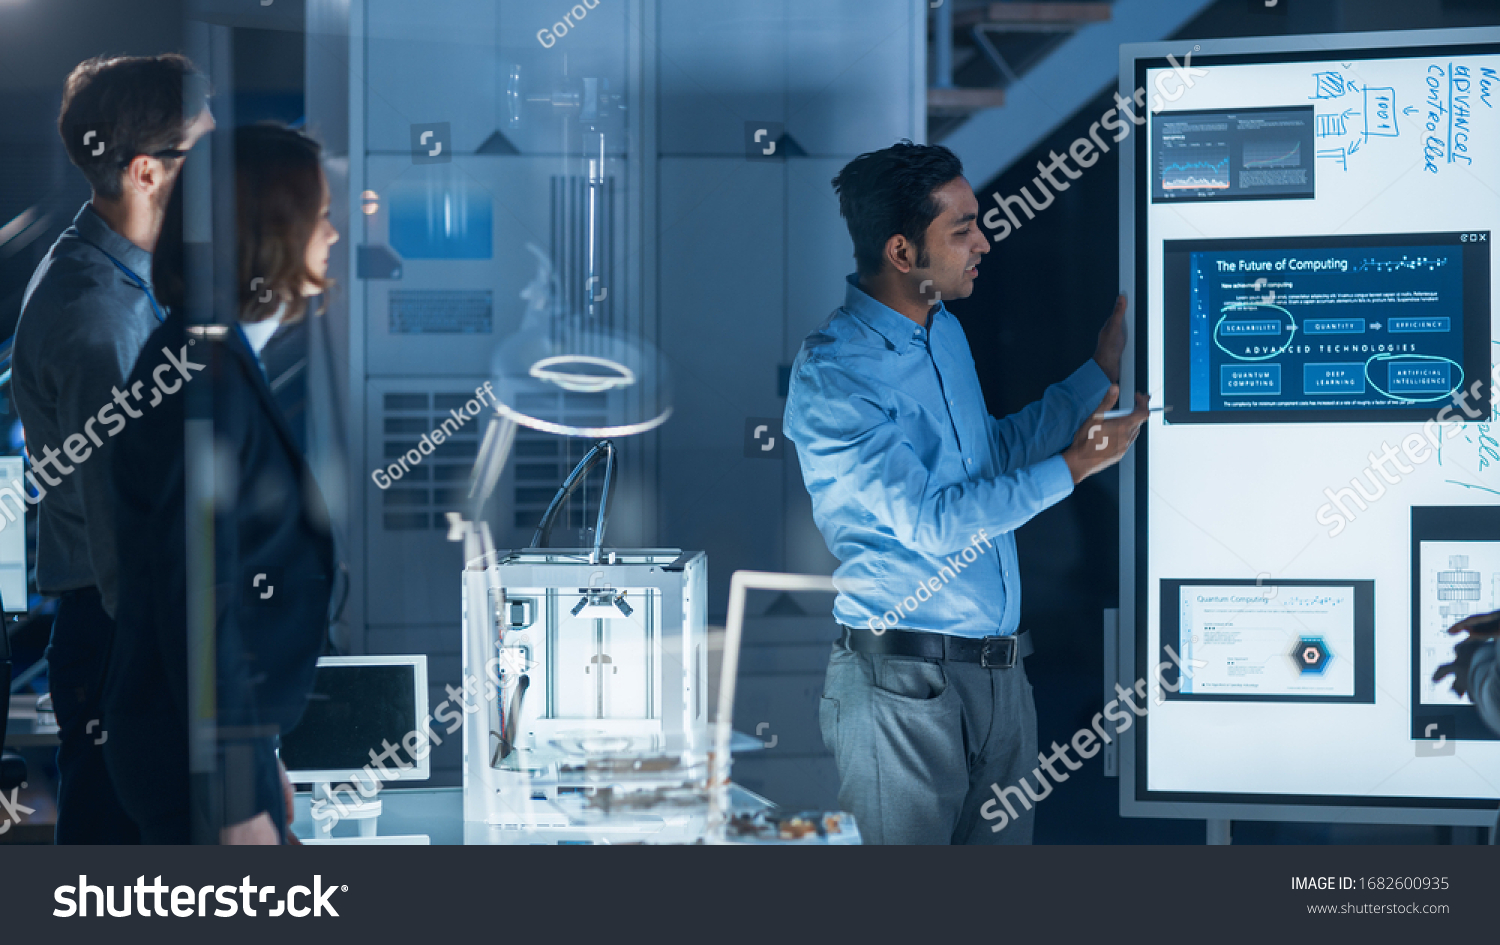 Engineers Meeting in Technology Research Laboratory: Male Engineer Leads Presentation Using Digital Whiteboard, Shows Machine Blueprint, Data Analytics and Neural Network while Colleagues Listening #1682600935